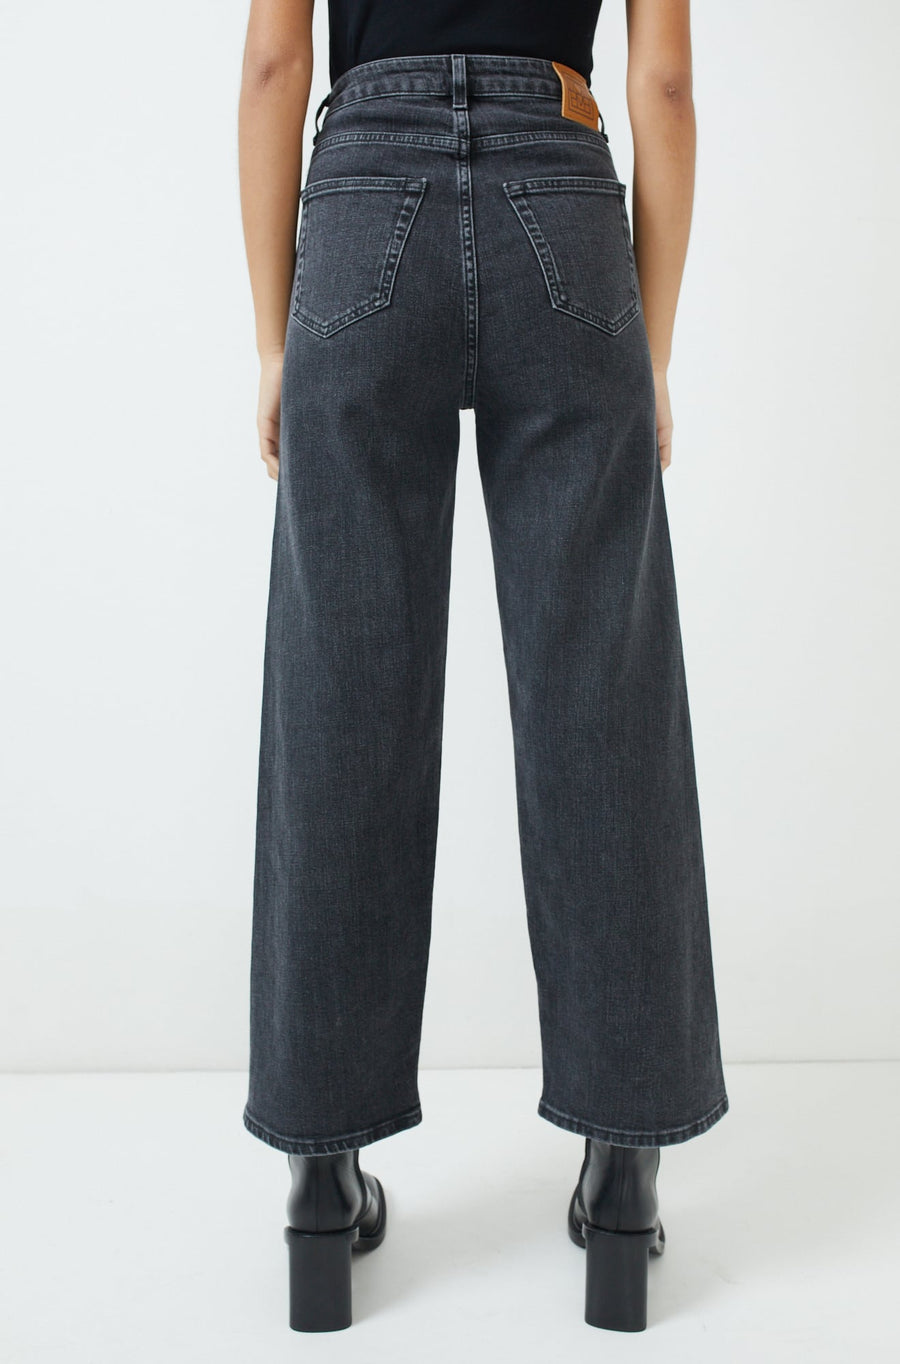 Flair Jeans-grey wash